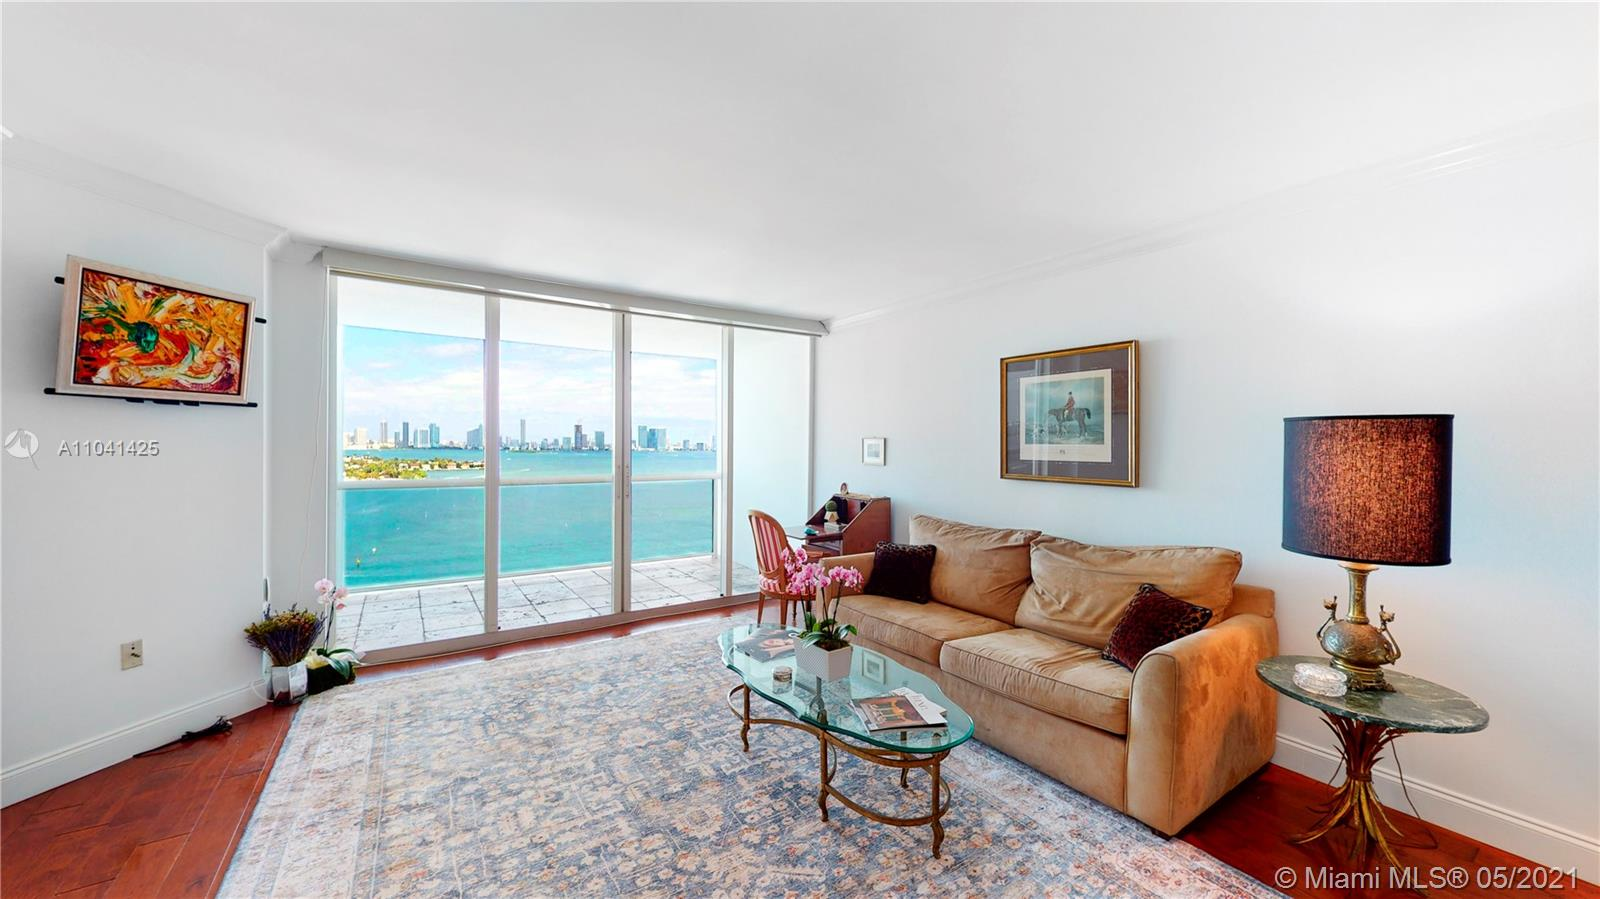 Rare opportunity to create your dream home from this 23rd floor west facing condo. Every room has spectacular unobstructed views of Biscayne Bay and the Miami Skyline. Condo features include 2 spacious bedrooms,  2 1/2 bathrooms, open kitchen, alarm and sunset facing balcony. Sunset Harbour is a full service building that offers on site management, 24 hour security, valet, gym, pools, hot tub and attached private marina. Located in one of Miami Beach most sought  after community walkable to great shopping, supermarkets, restaurants, coffee shops, gyms and yoga studios  One deeded parking space is included. Easy to show call or text listing agent.